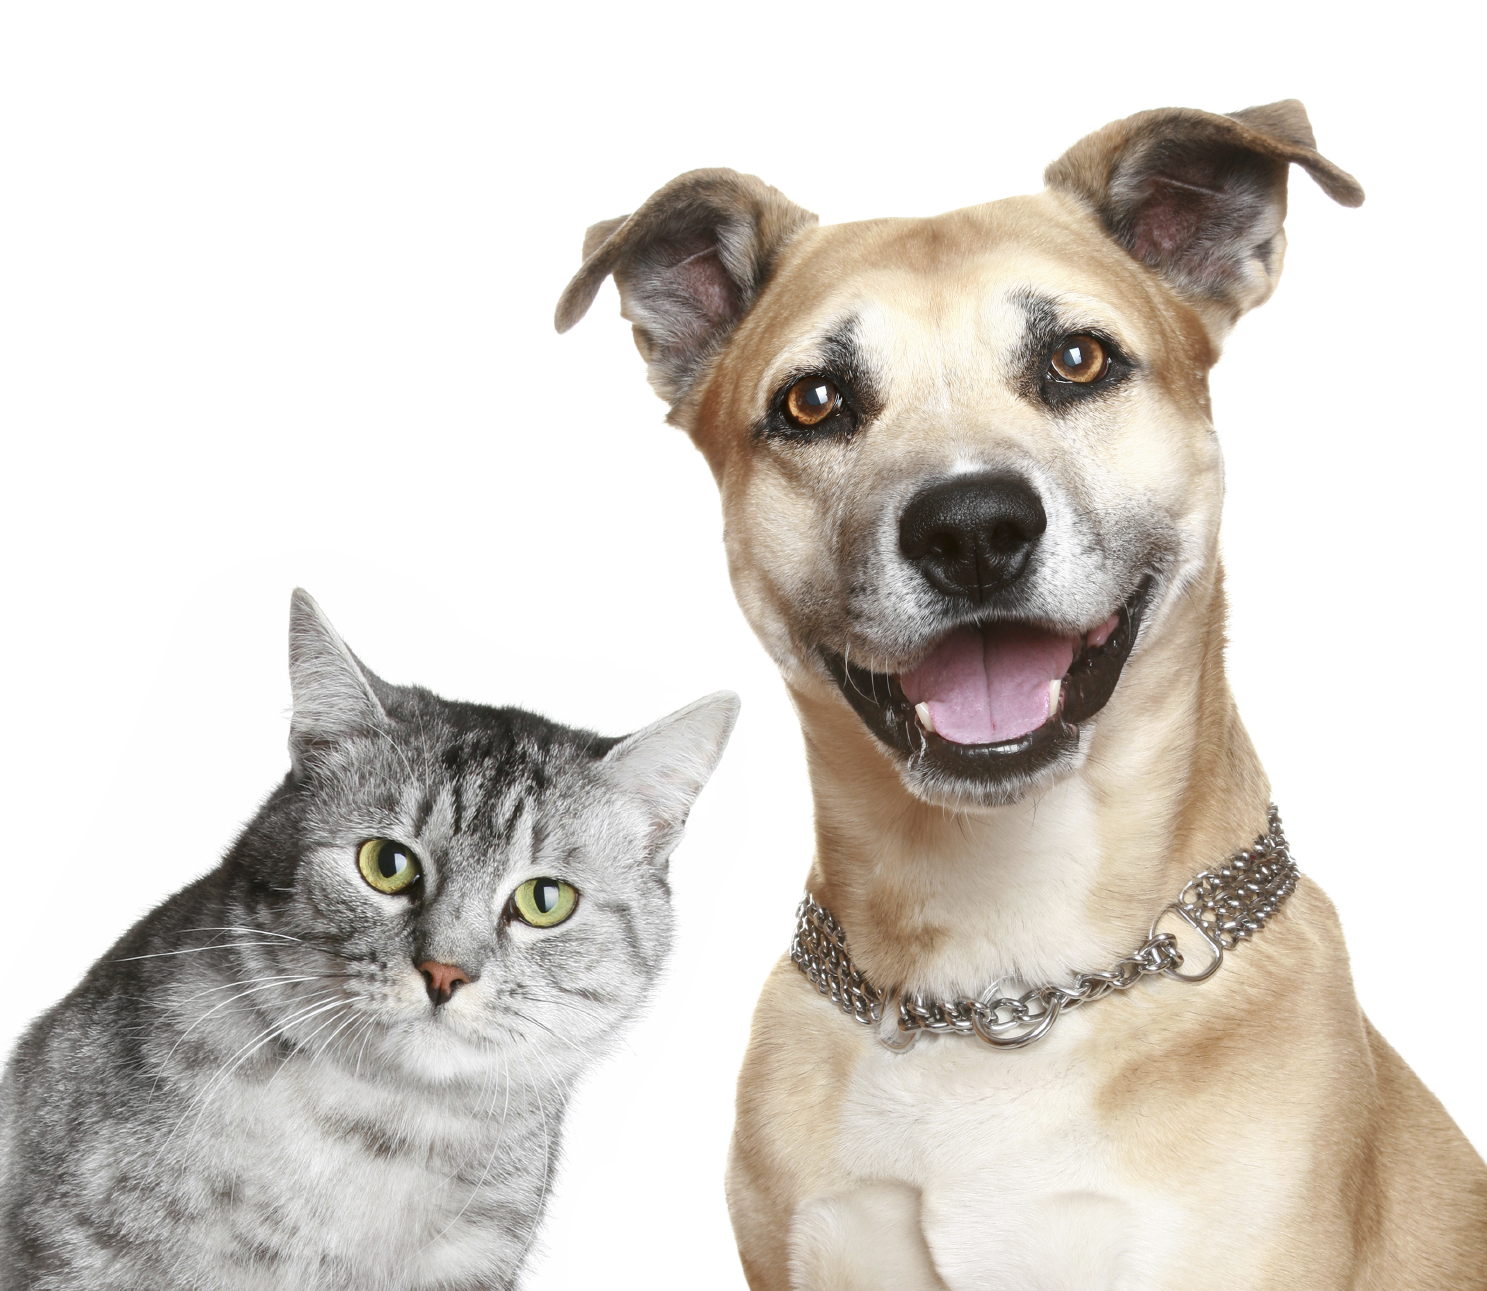 Staffordshire terrier and cat